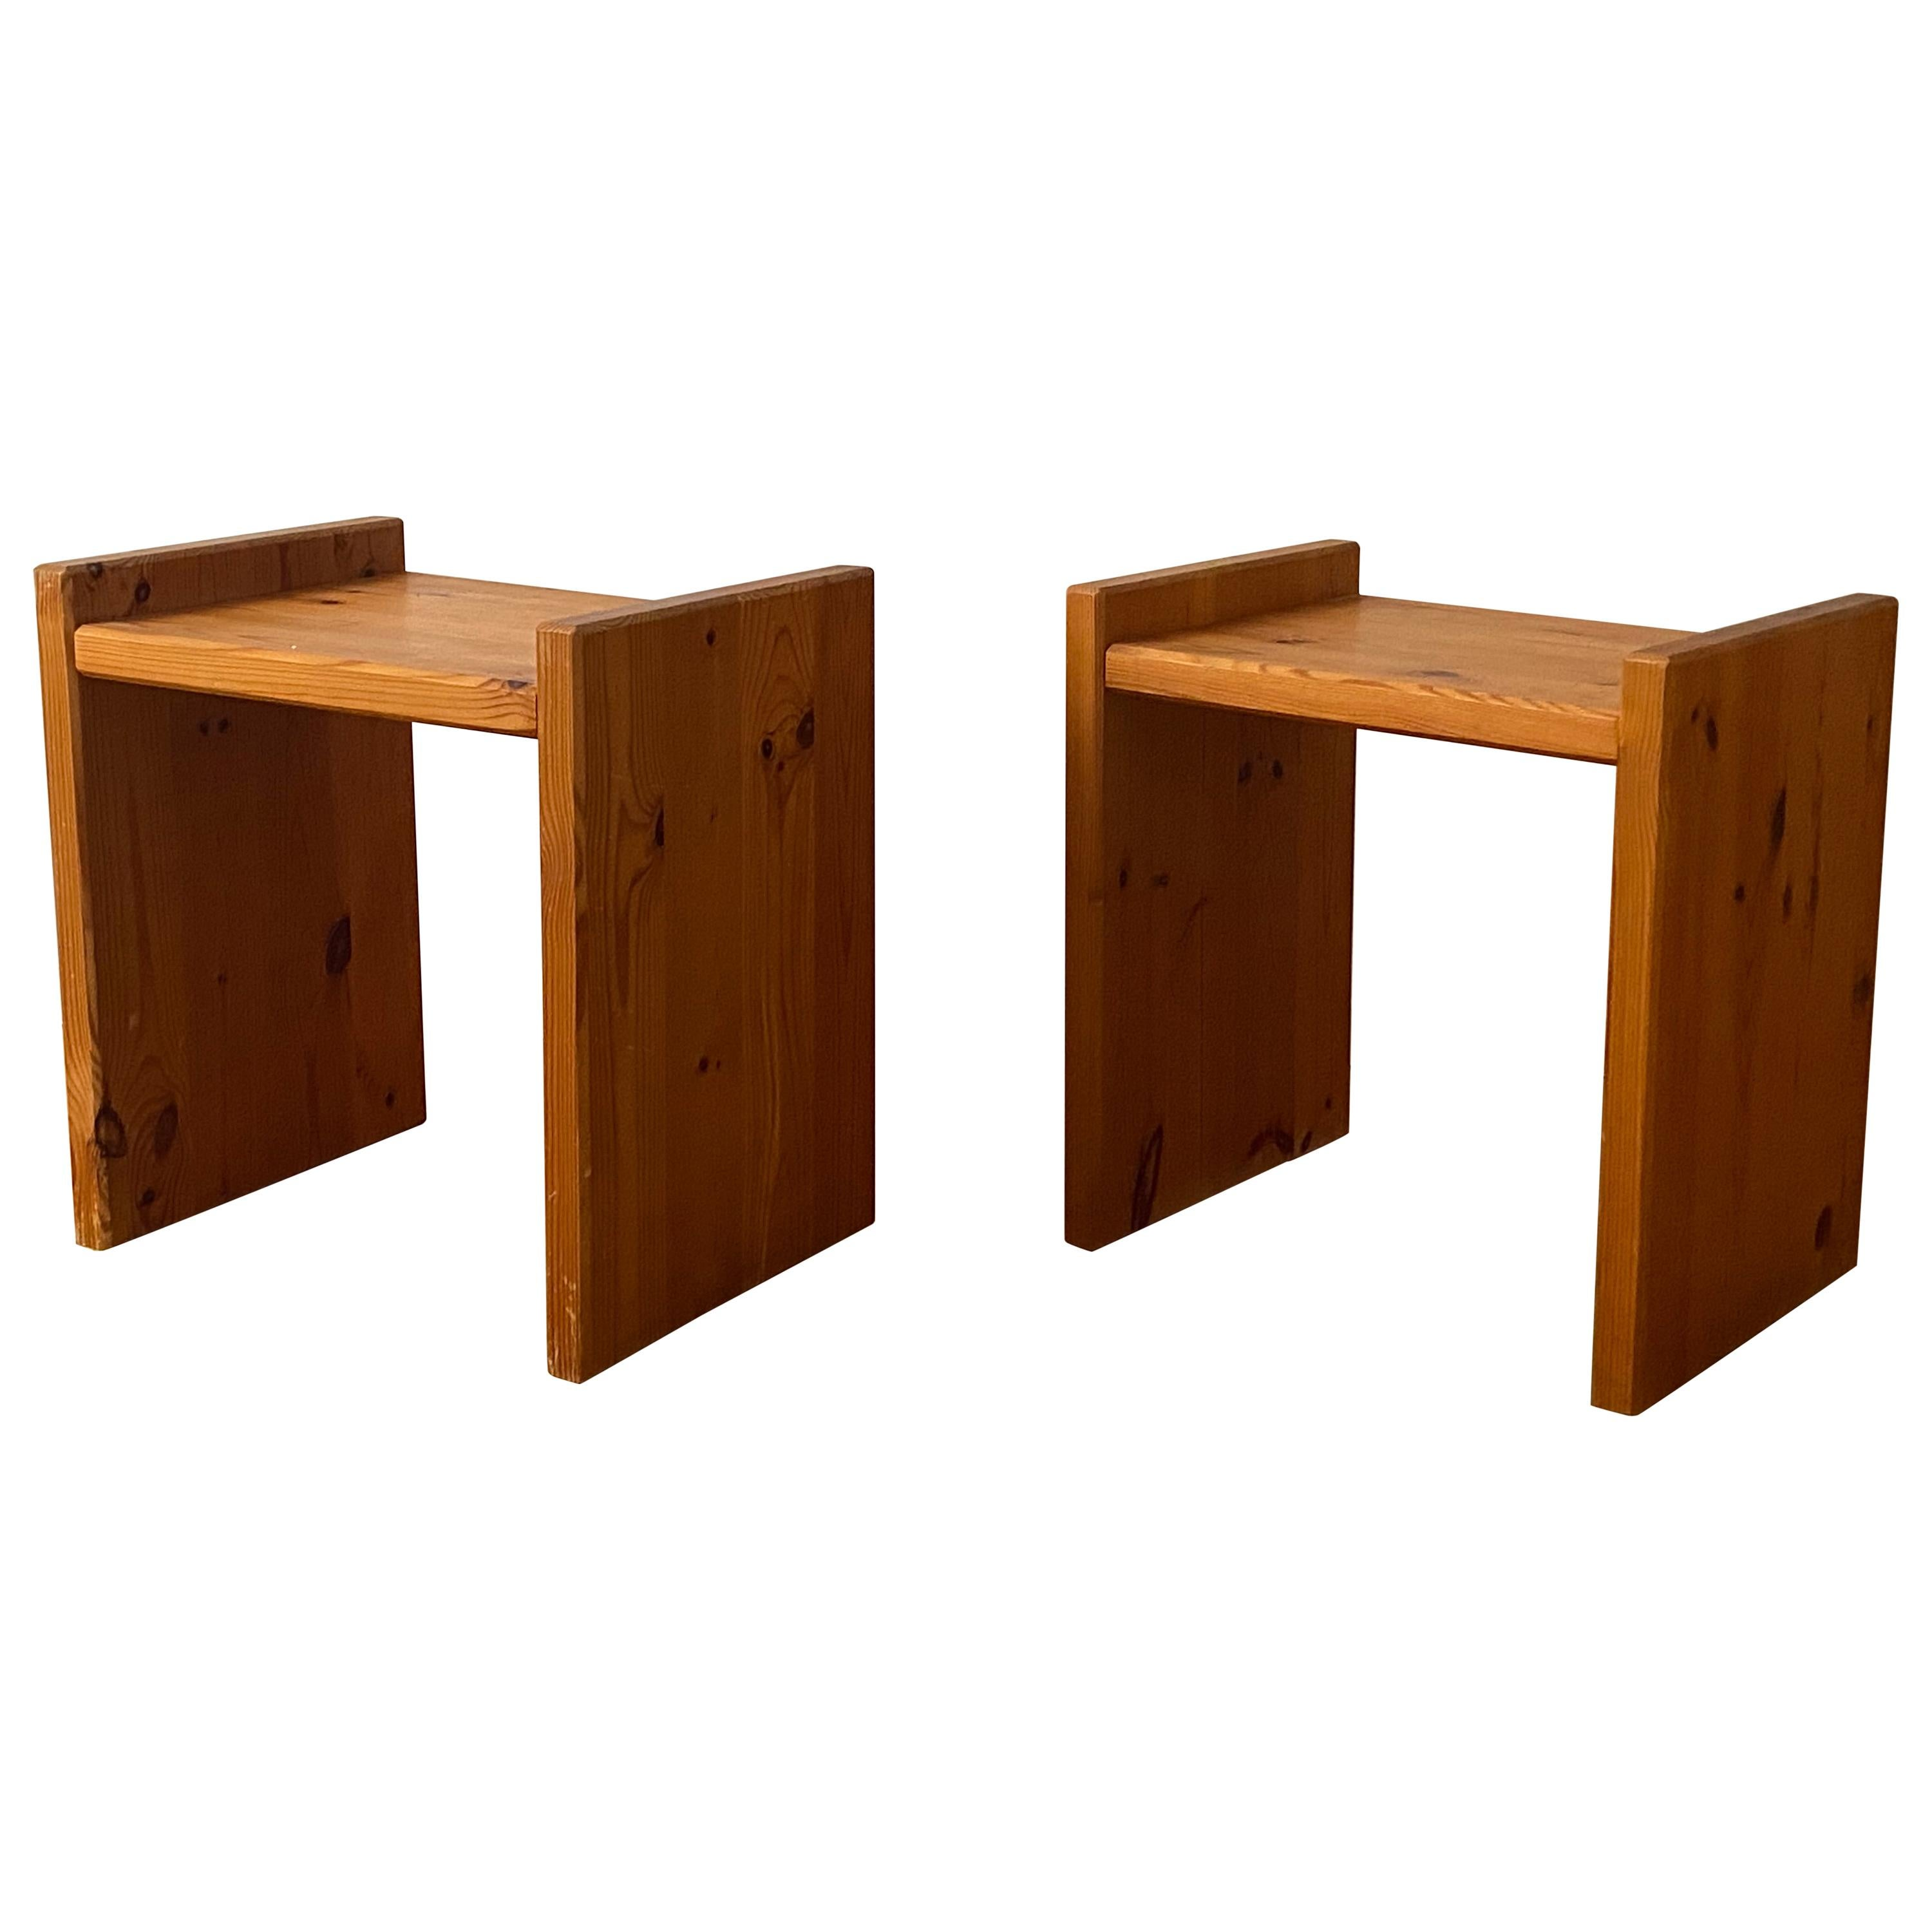 Swedish, Minimalist Night Stands or Side Tables, Solid Pine, Sweden, 1970s